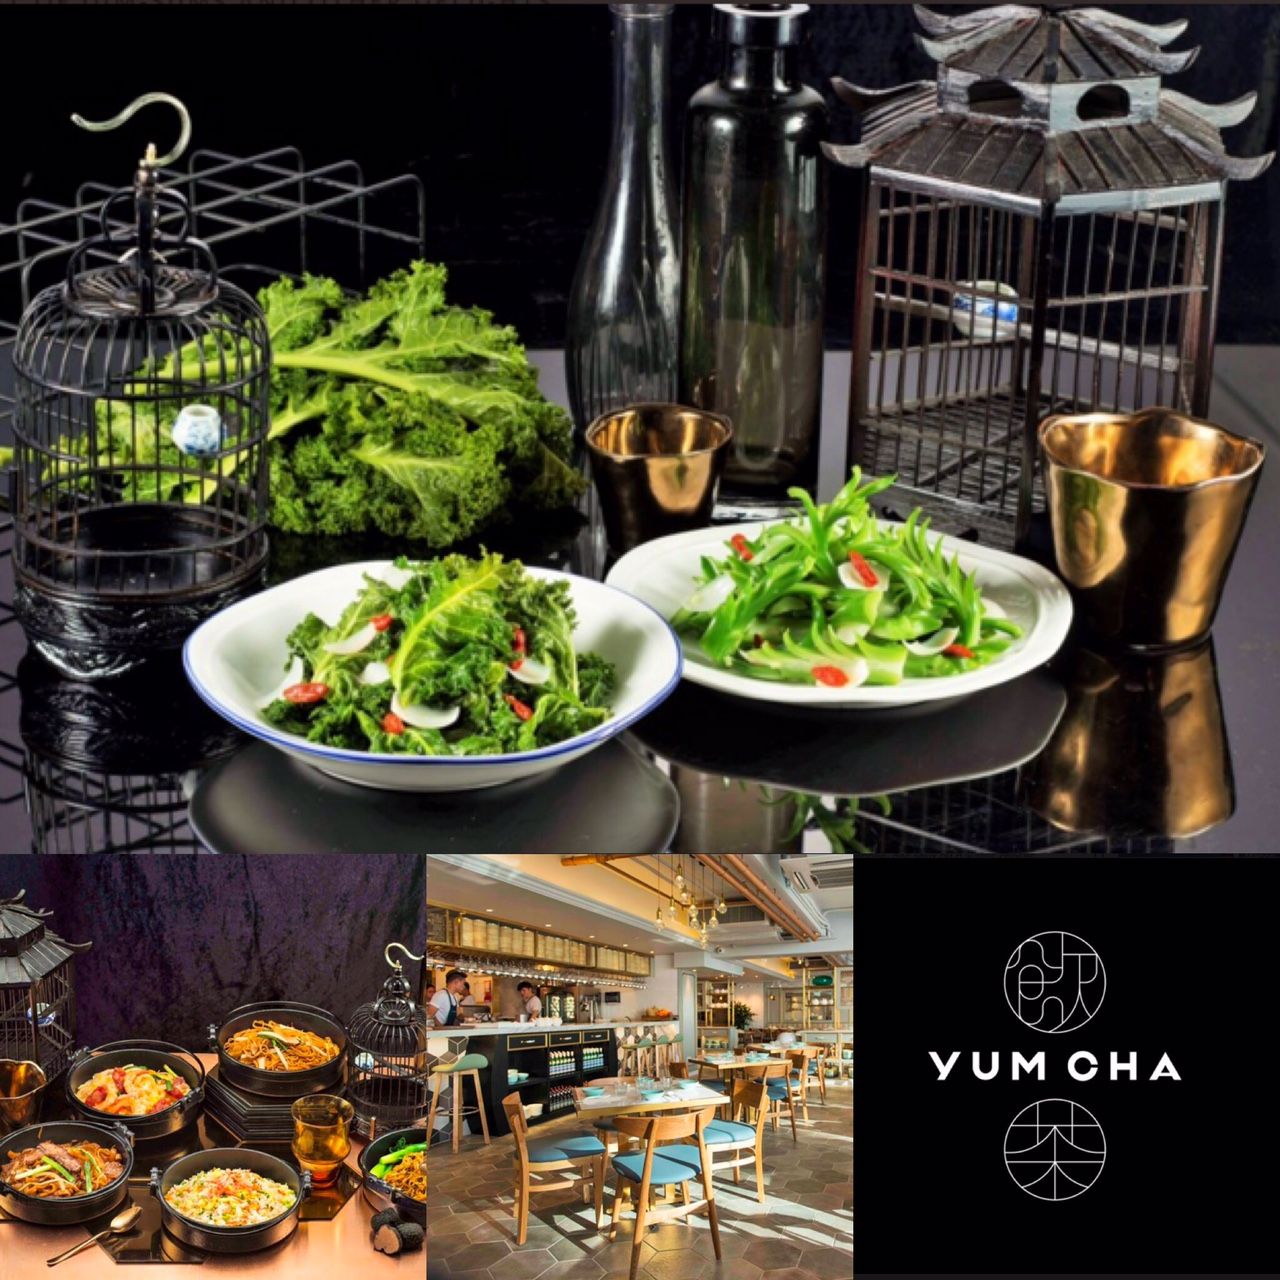 YUM CHA:  A Must Try for Dim Sum lovers